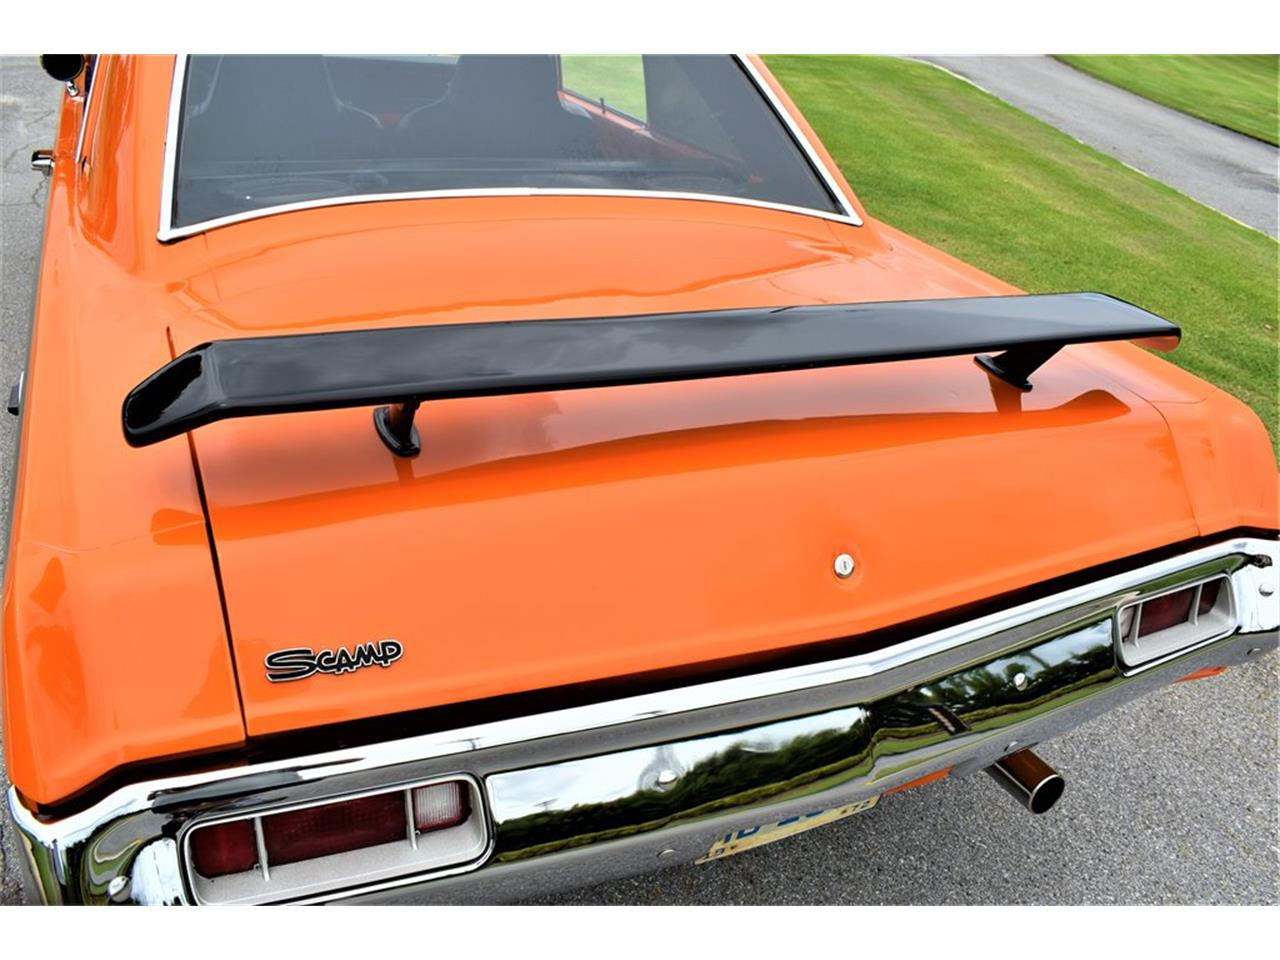 1972 Plymouth Scamp for sale in Lakeland, FL – photo 7